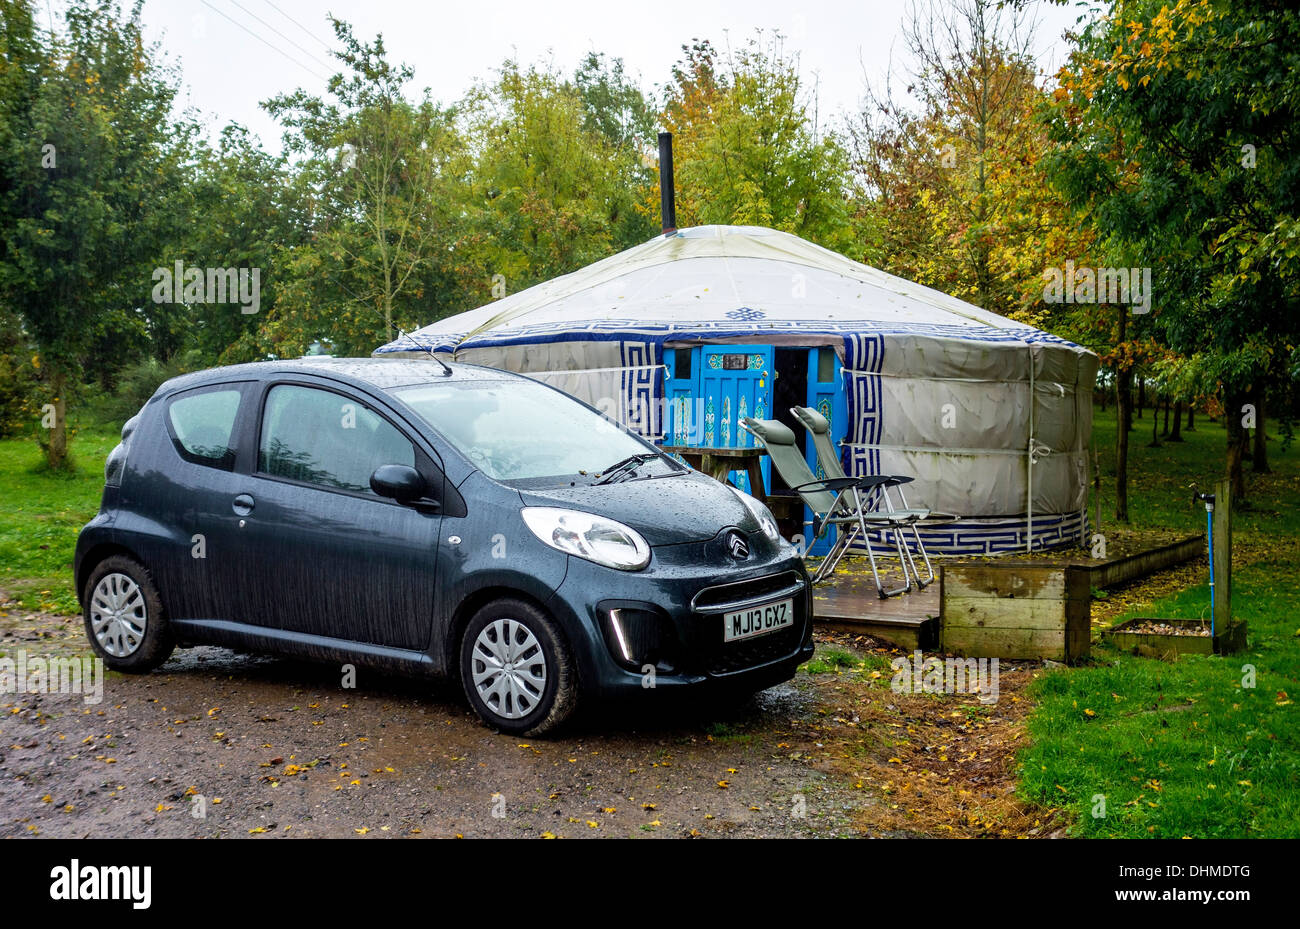 Yurt holiday. Out of season holiday in a cosy Mongolian Yurt. Meon Springs Yurt Village Hampshire - Stock Image